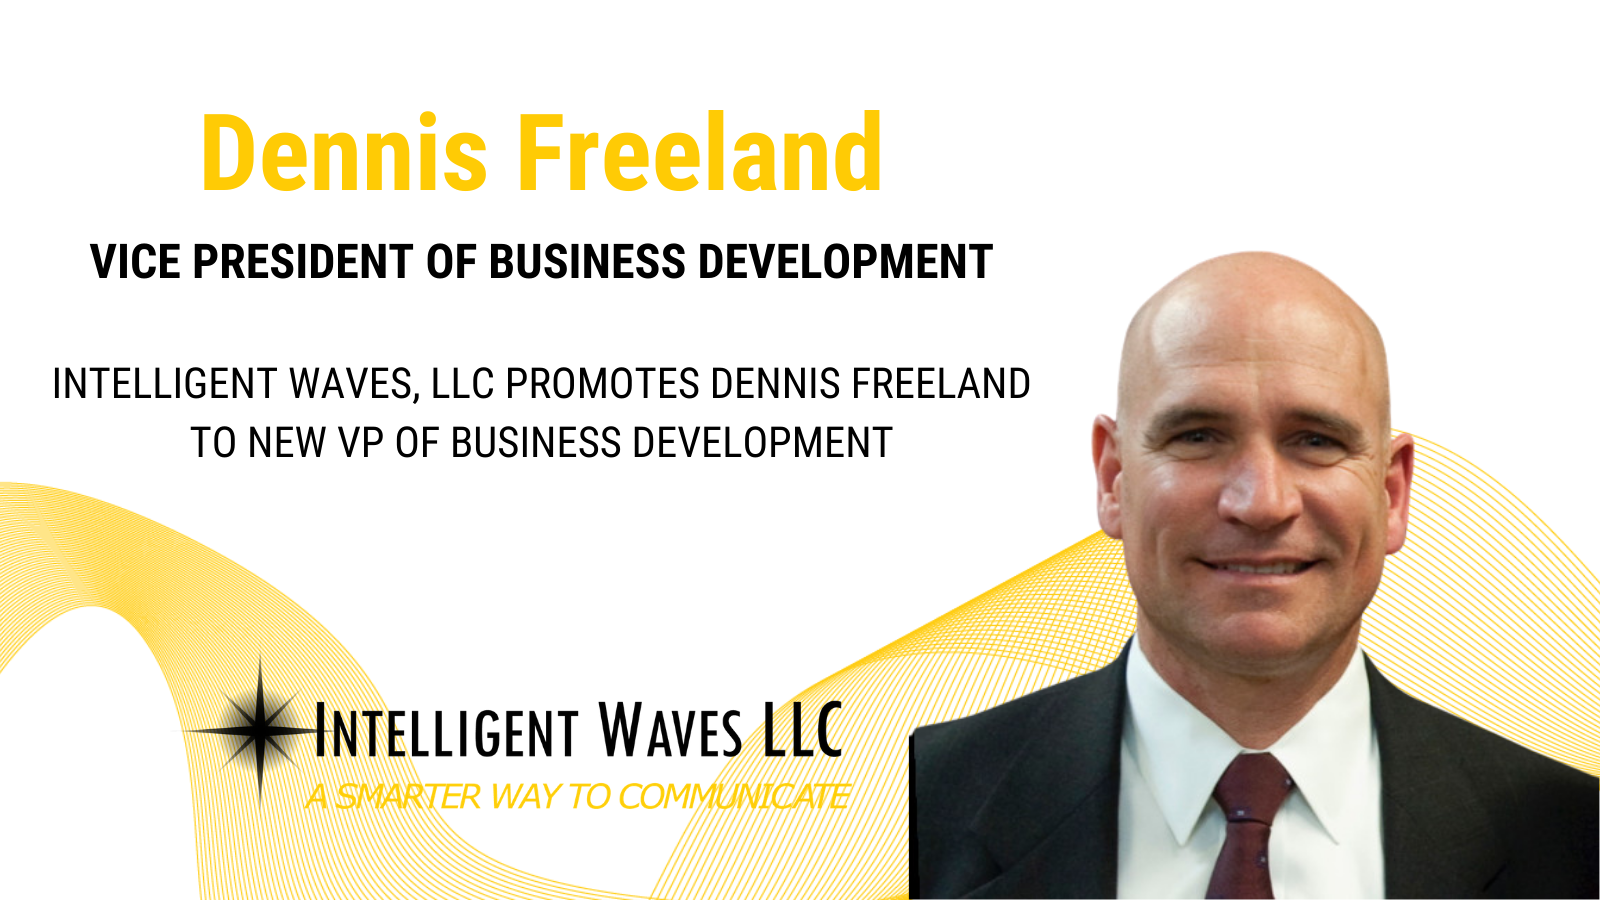 Dennis Freeland Promoted to New VP of Business Development